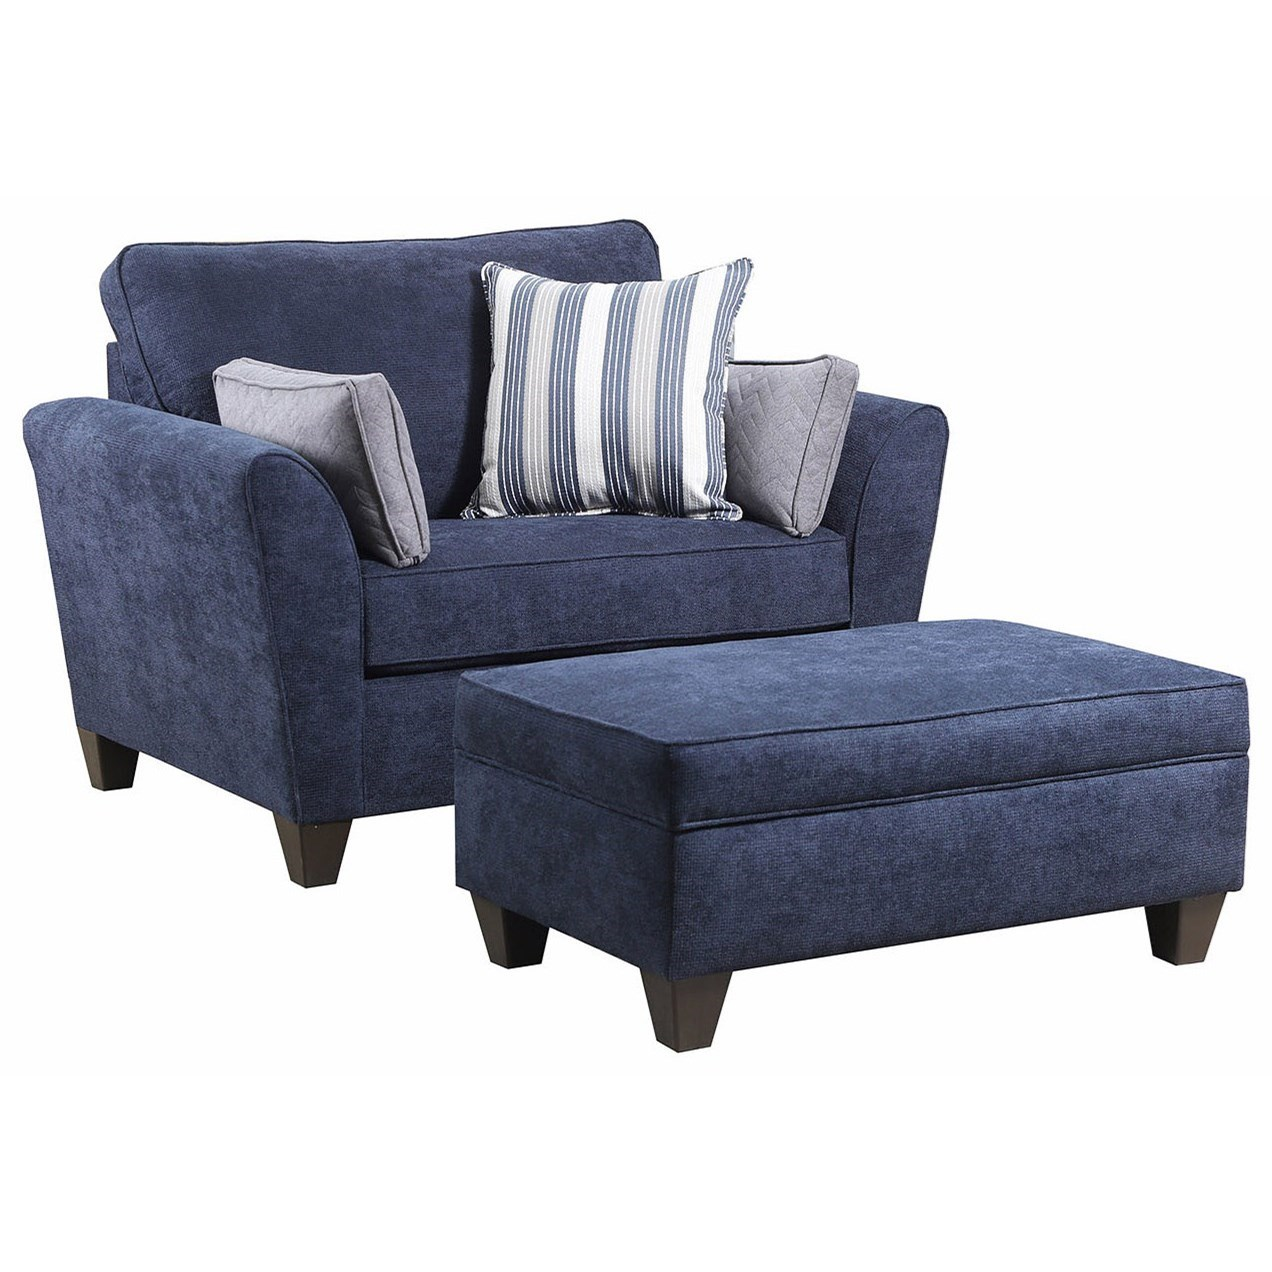 7081 Chair and a Half  by Lane at Esprit Decor Home Furnishings